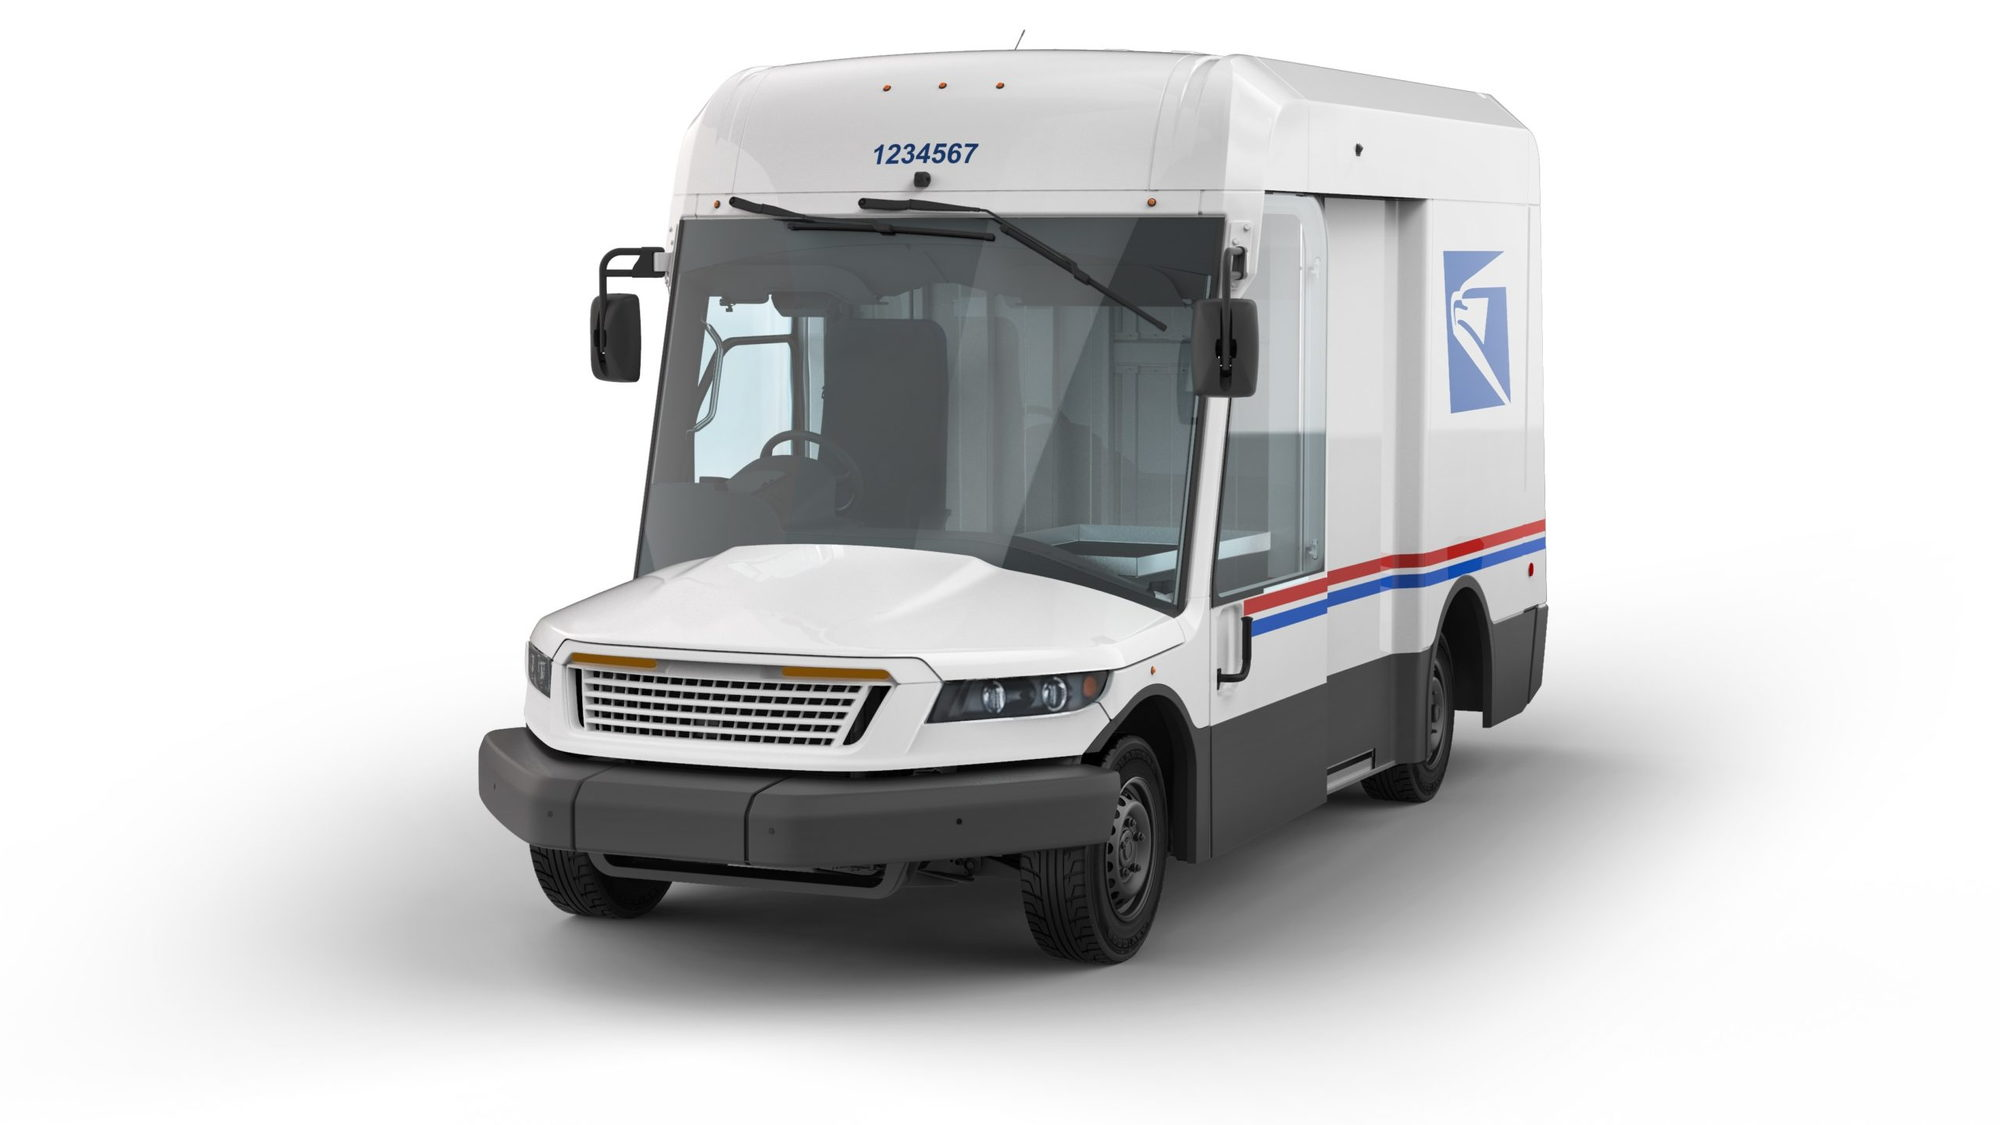 USPS Next Generation Delivery Vehicle  -  Oshkosh Defense